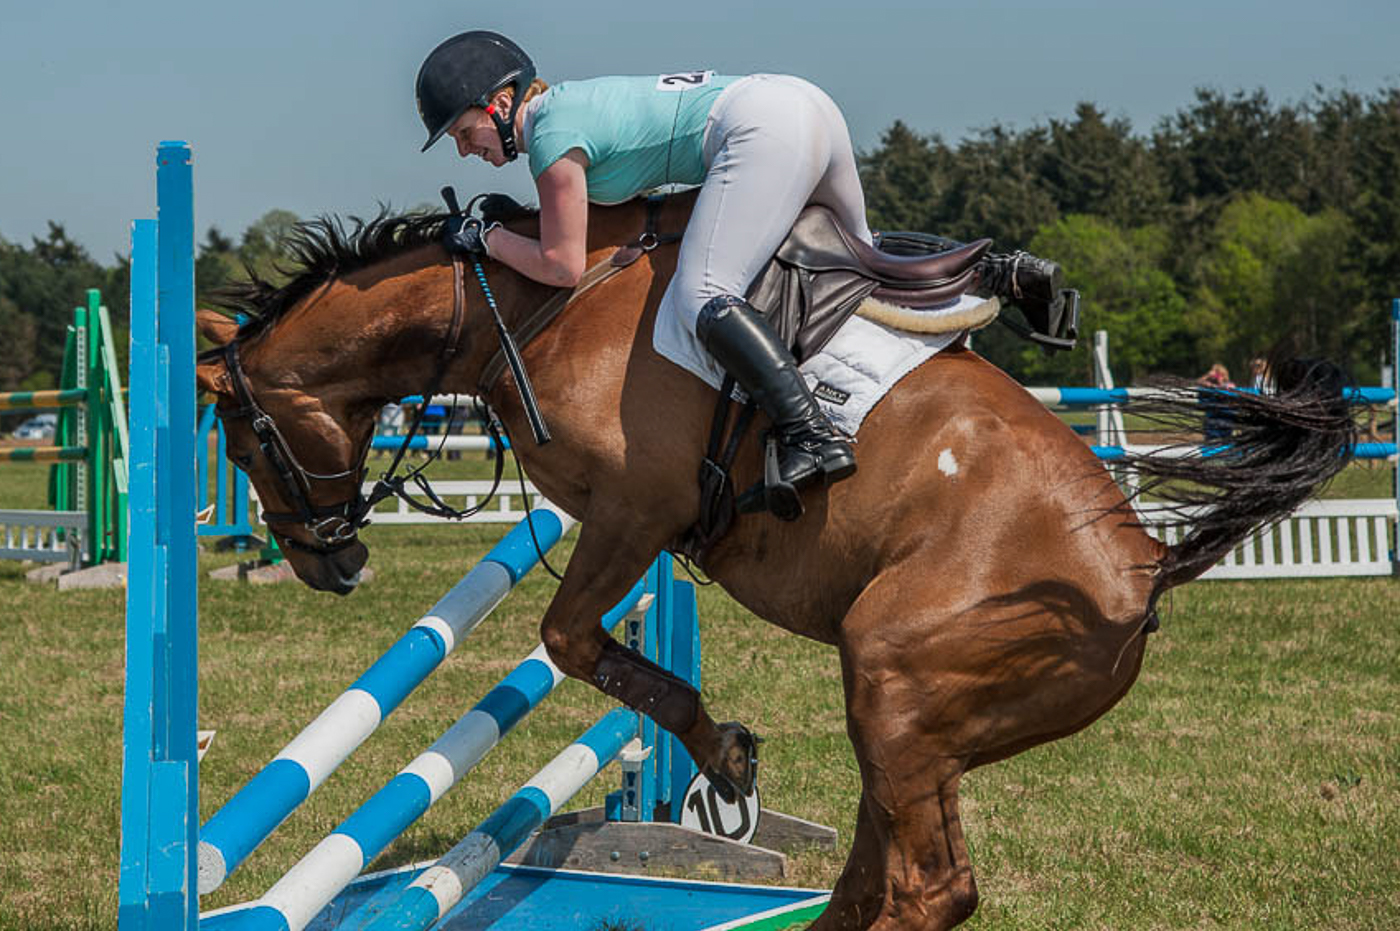 Thrills and spills at the South Suffolk Show